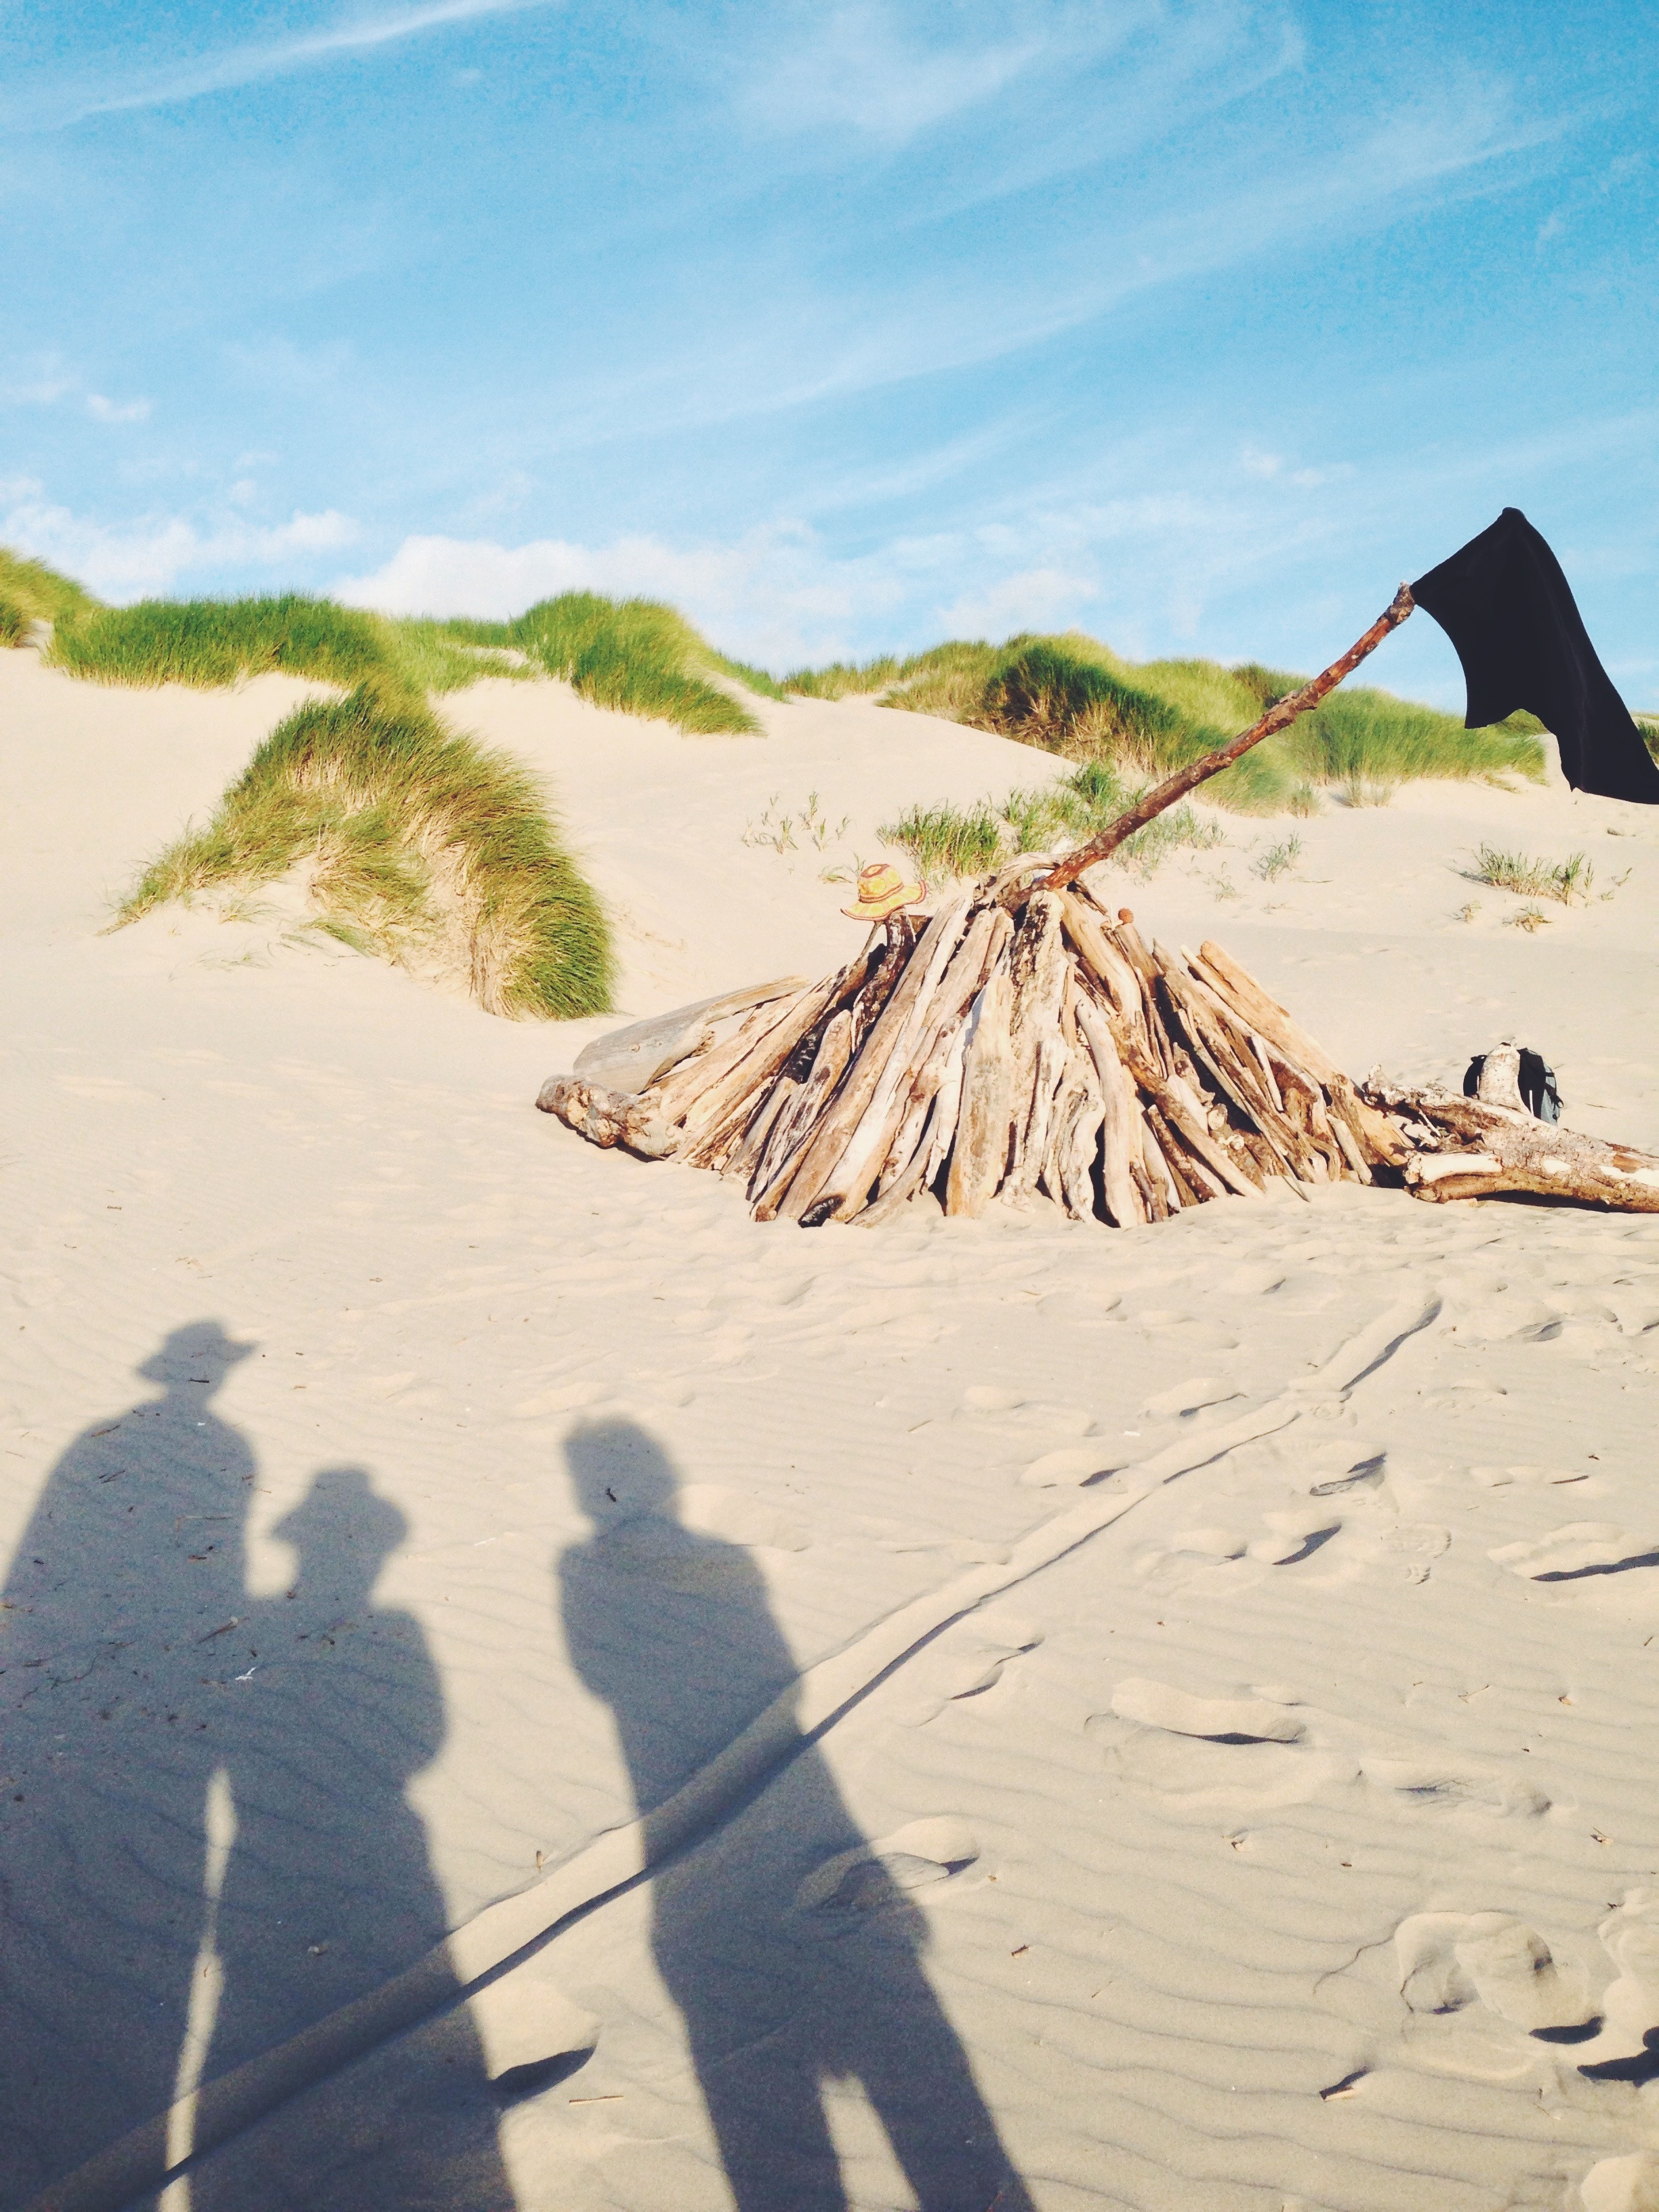 Inspecting our driftwood fort